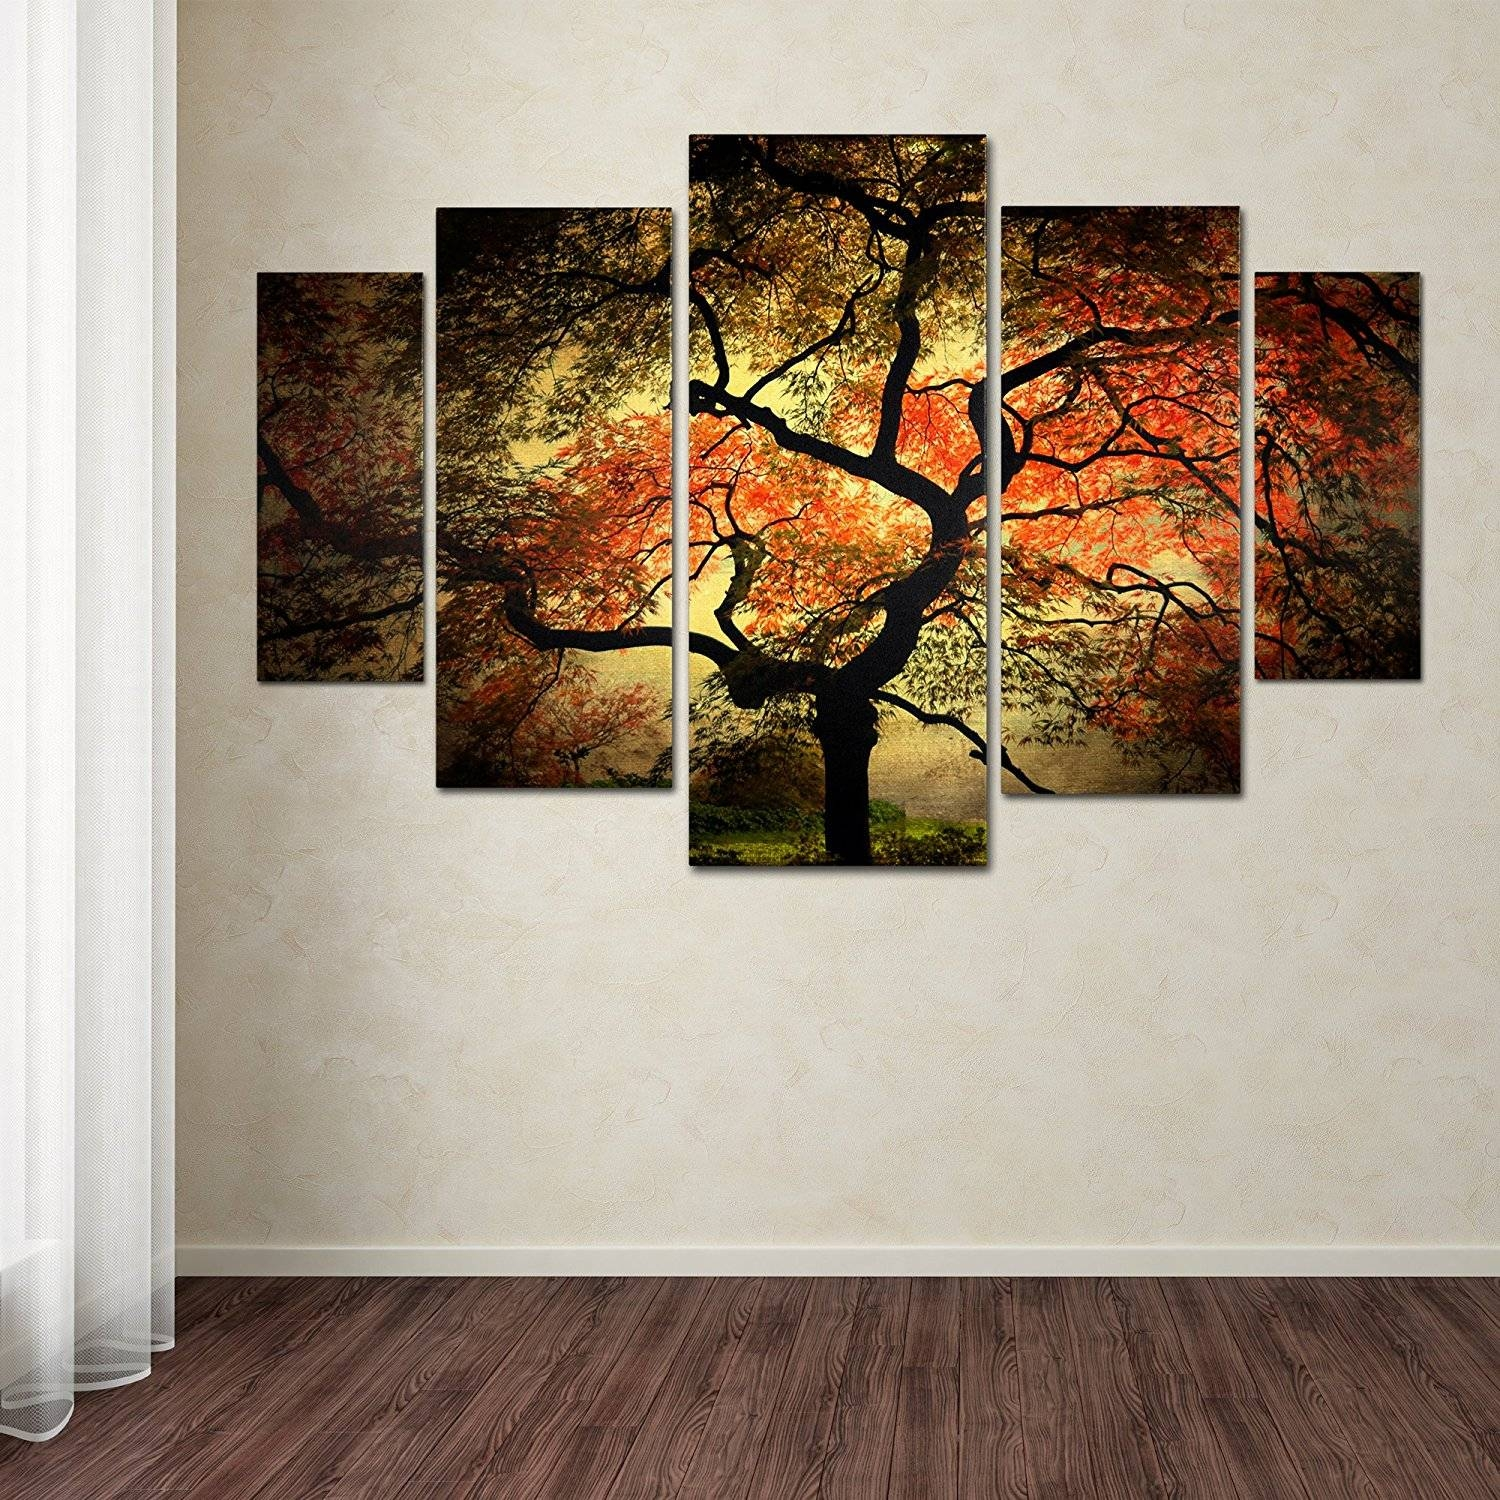 Five Piece Canvas Wall Art | Himalayantrexplorers Intended For Current Multi Panel Canvas Wall Art (View 19 of 20)